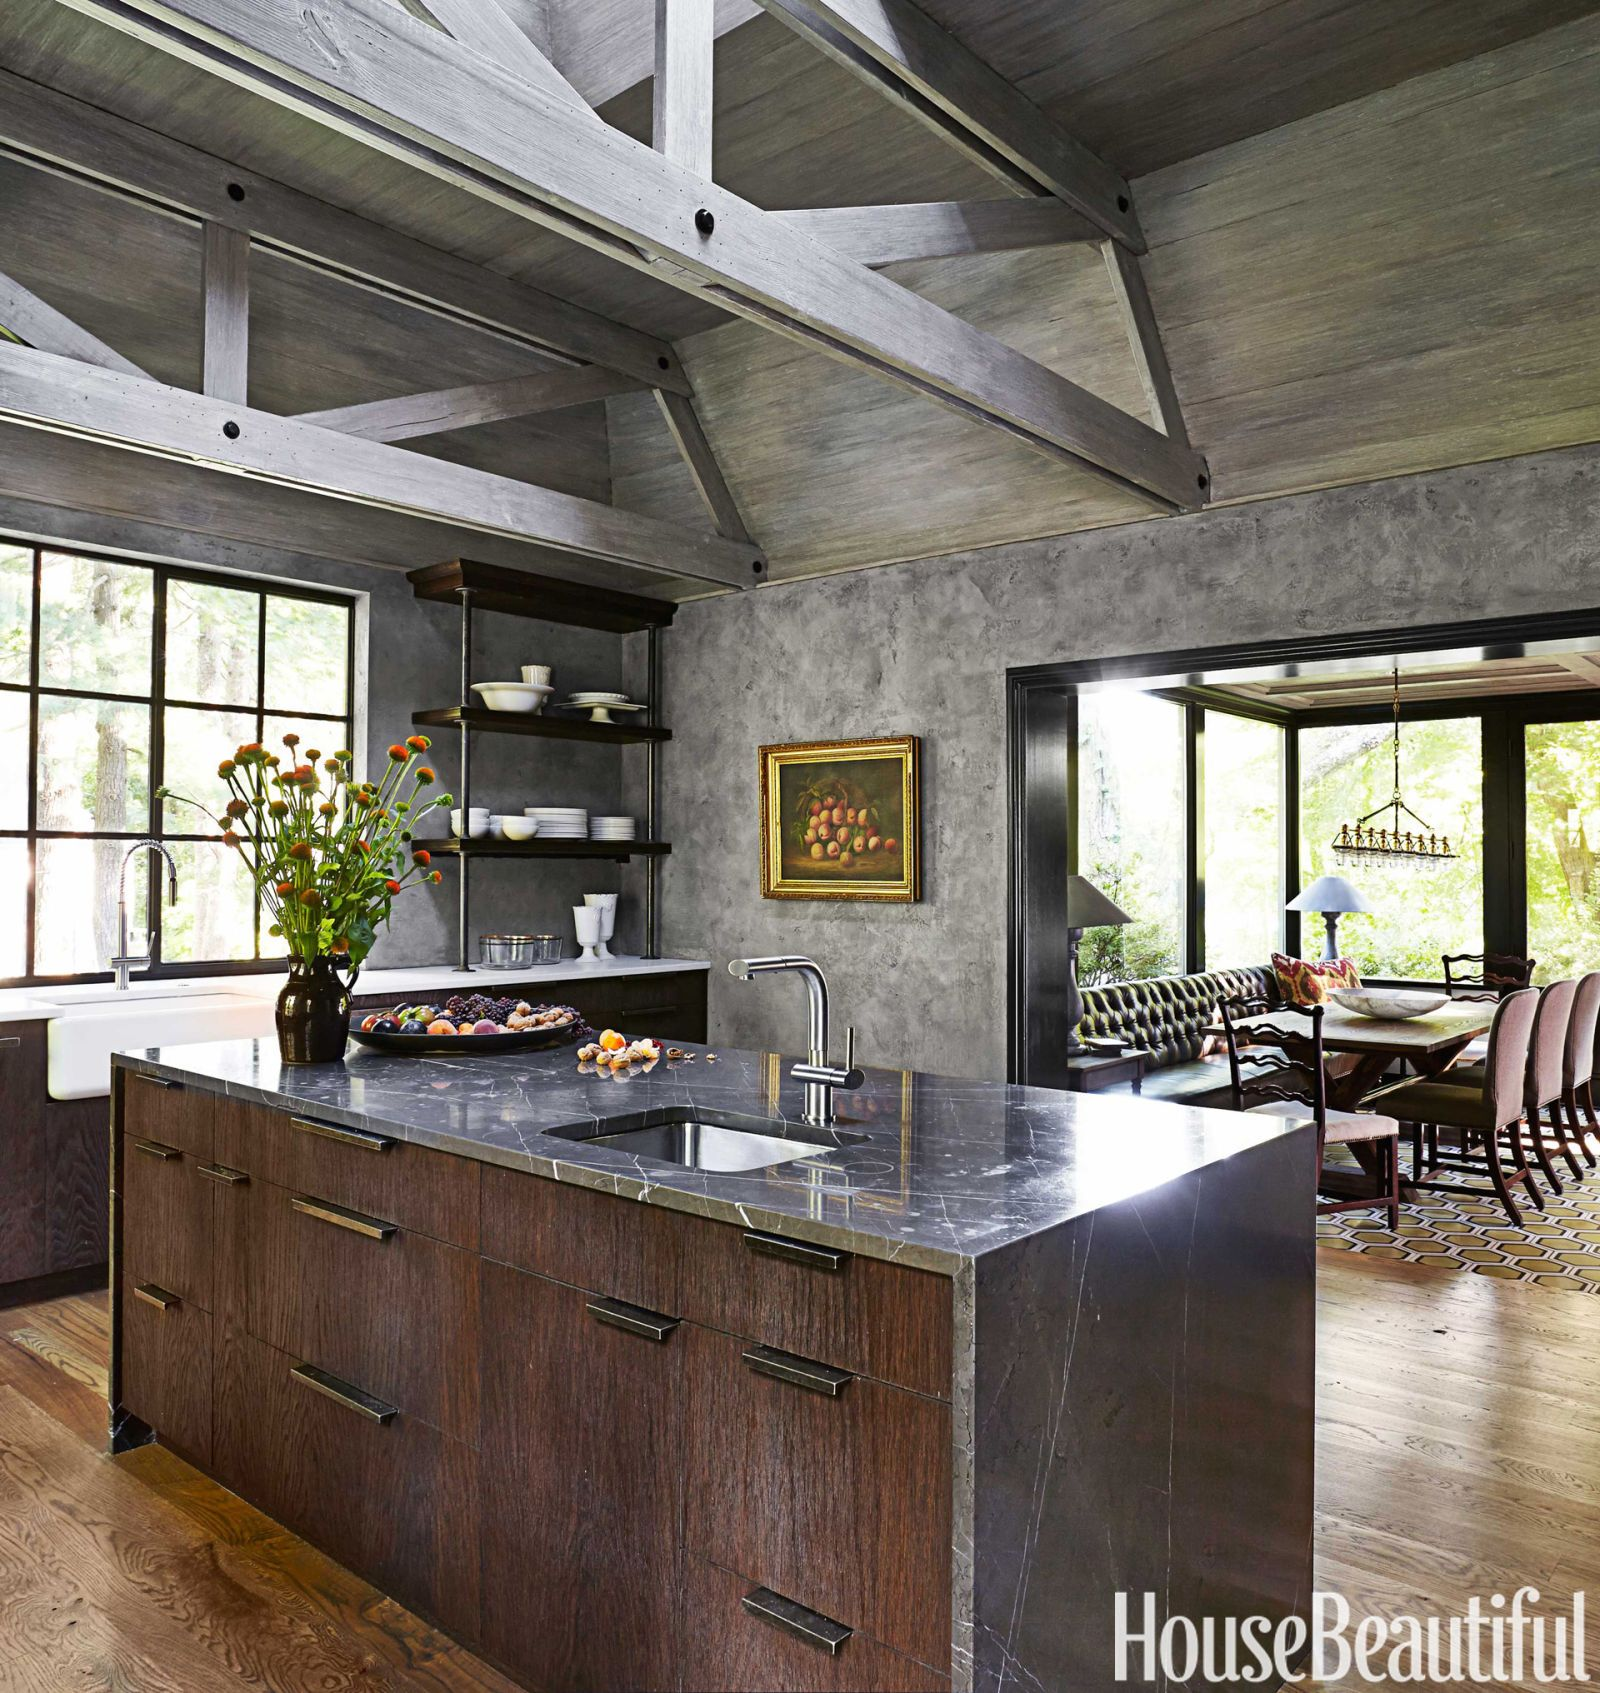 Tactile Materials And Architectural Details  Wire Brushed Oak Cabinets,  Cement Plaster Walls,